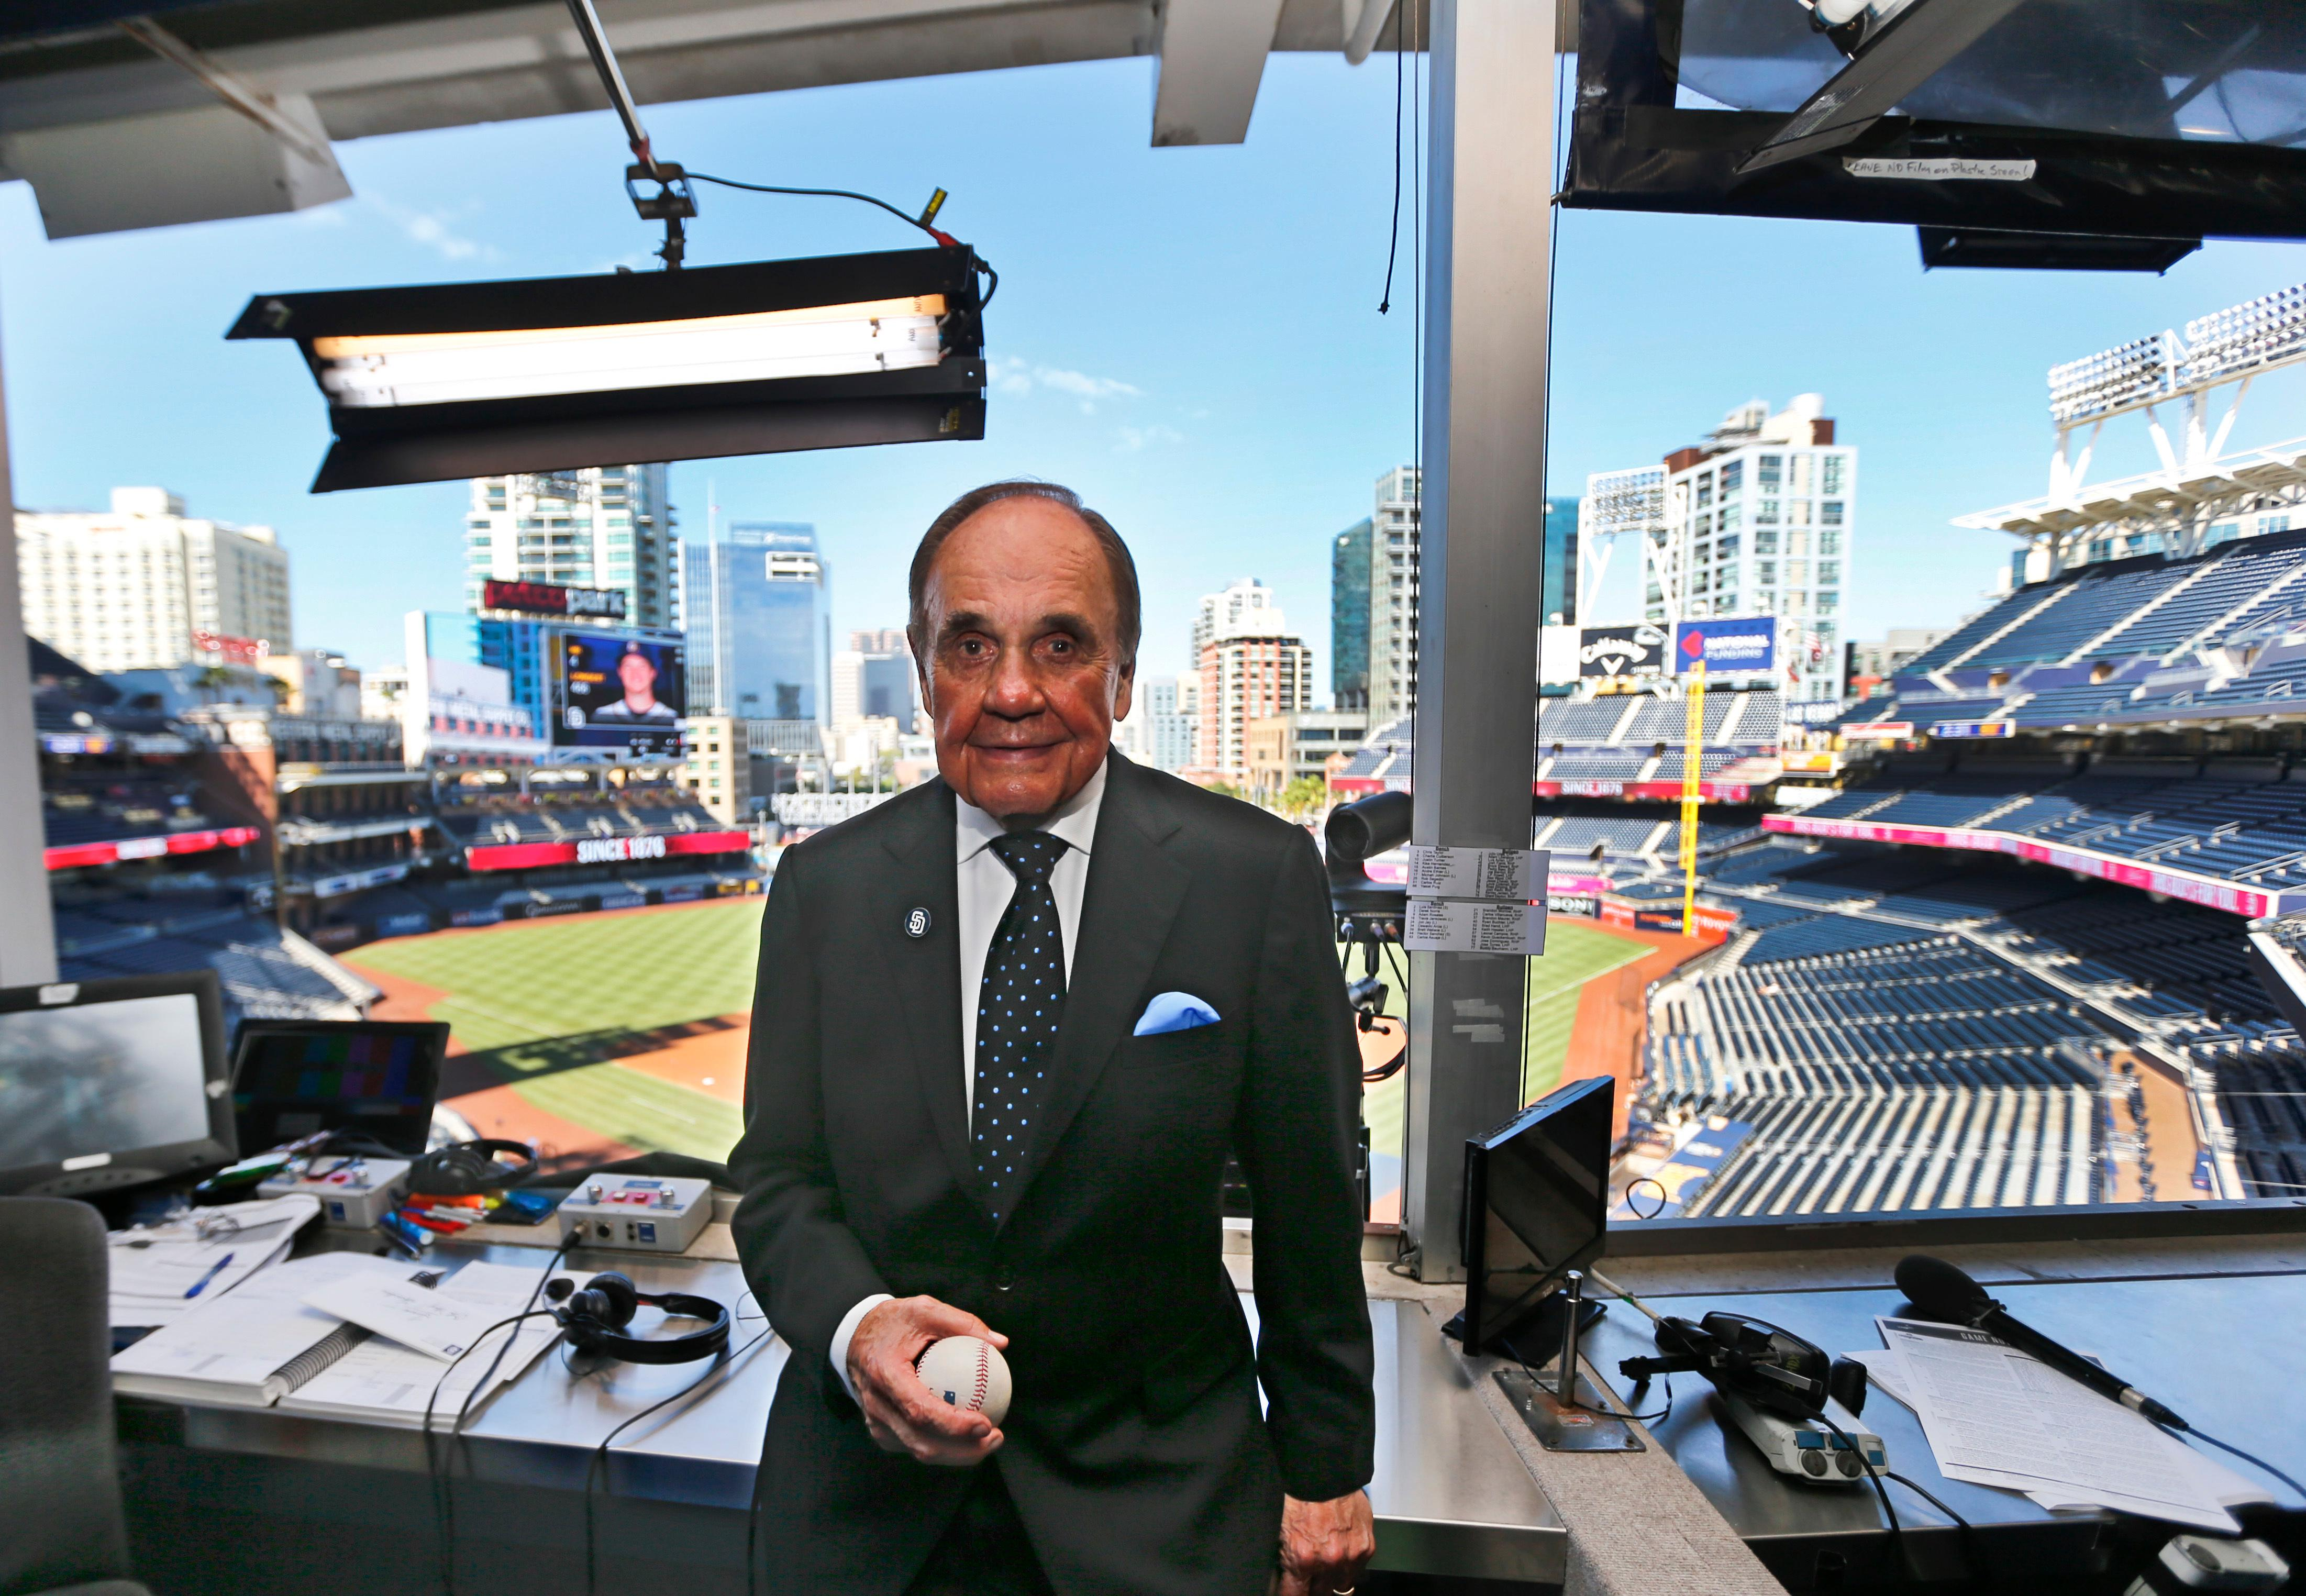 FILE - In this Sept. 29, 2016, file photo, Dick Enberg, the voice of the San Diego Padres, poses in his booth prior to the Padres' final home baseball game of the season in San Diego. (AP Photo/Lenny Ignelzi, File)<p></p>